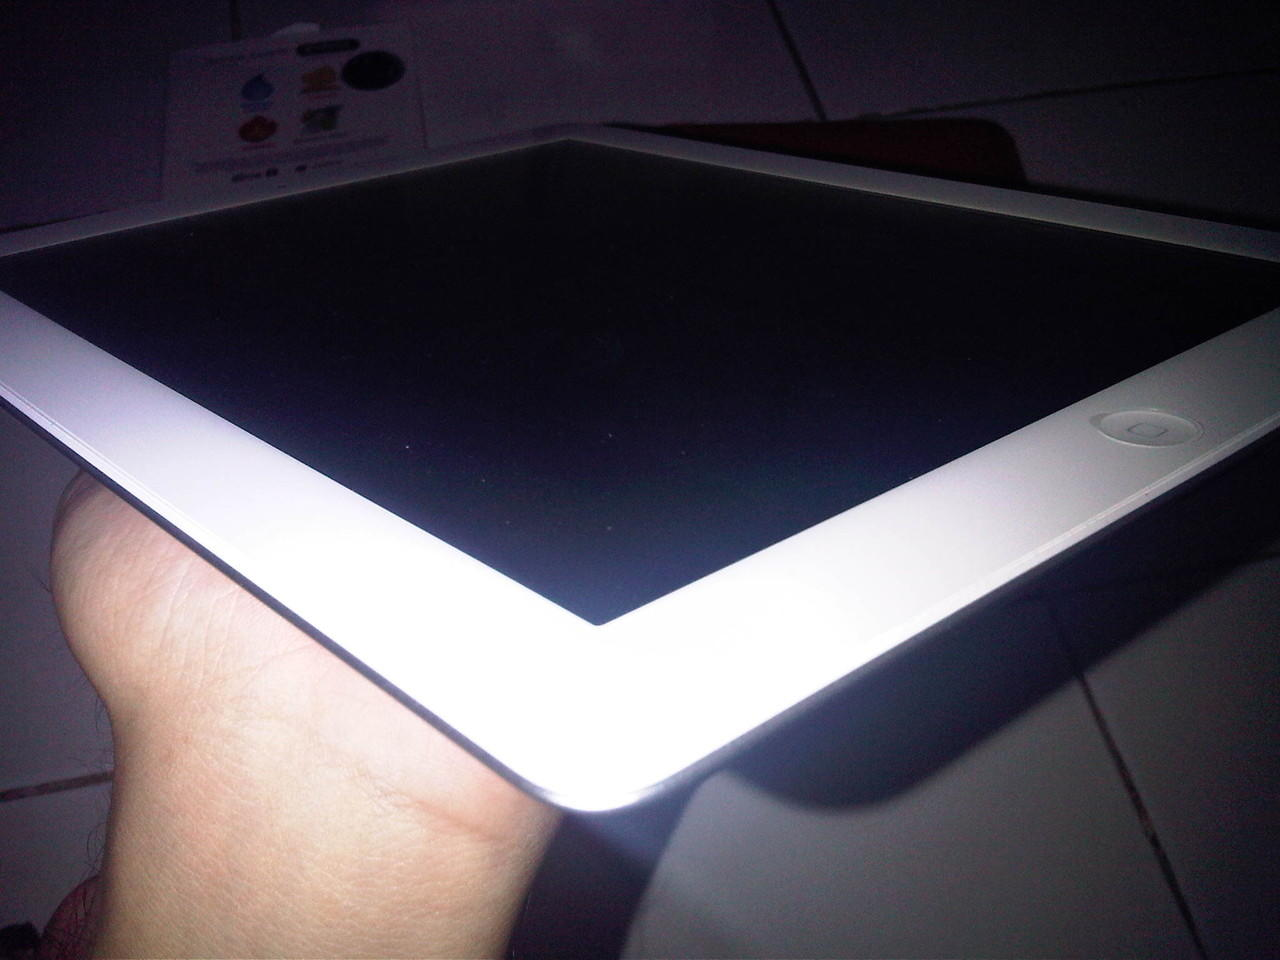 WTS The new Ipad